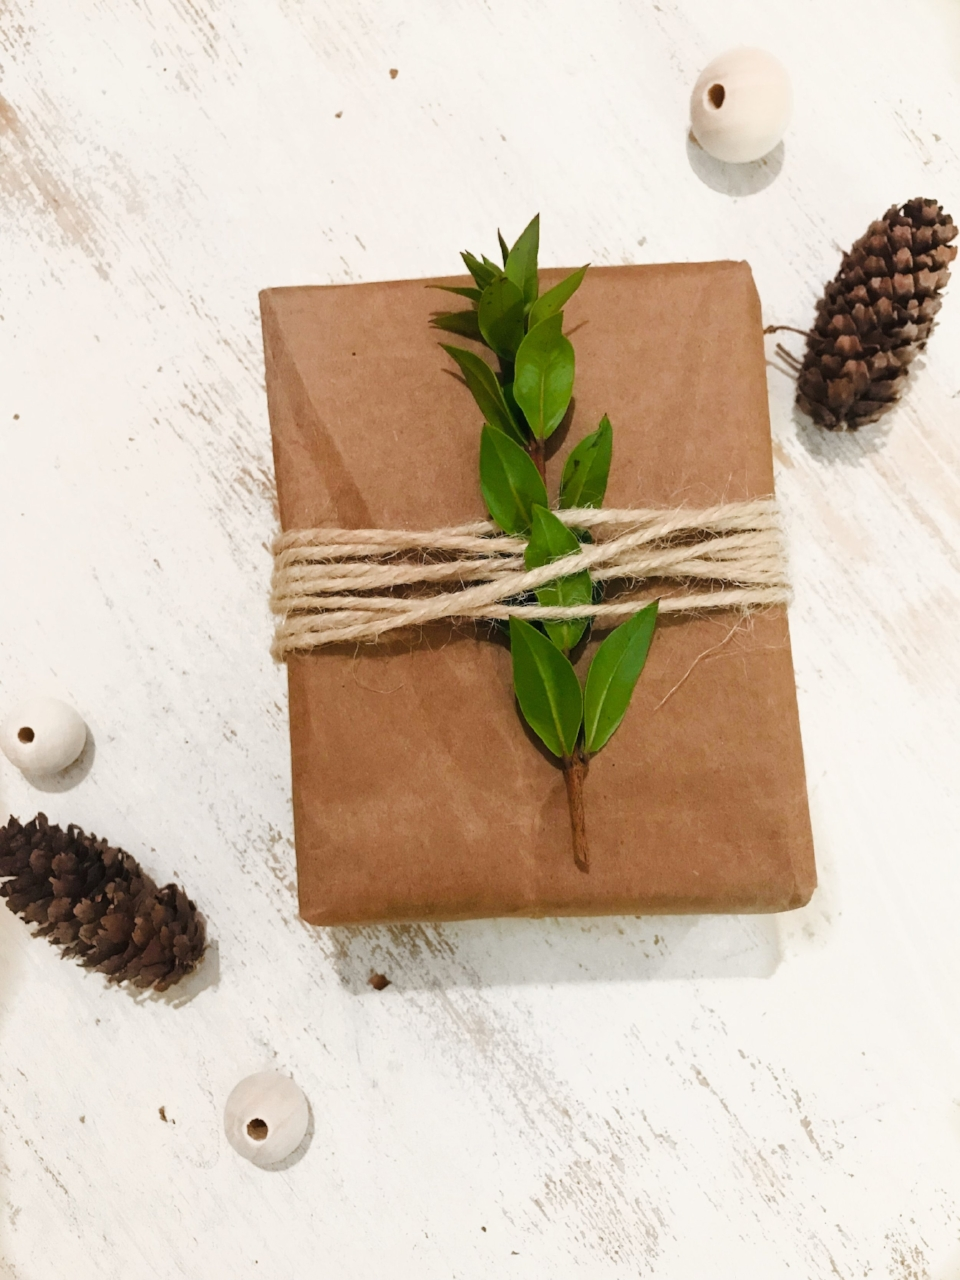 Minimal Wrapping Ideas : 6 Ways to Wrap a Gift With Recycled Grocery Bags